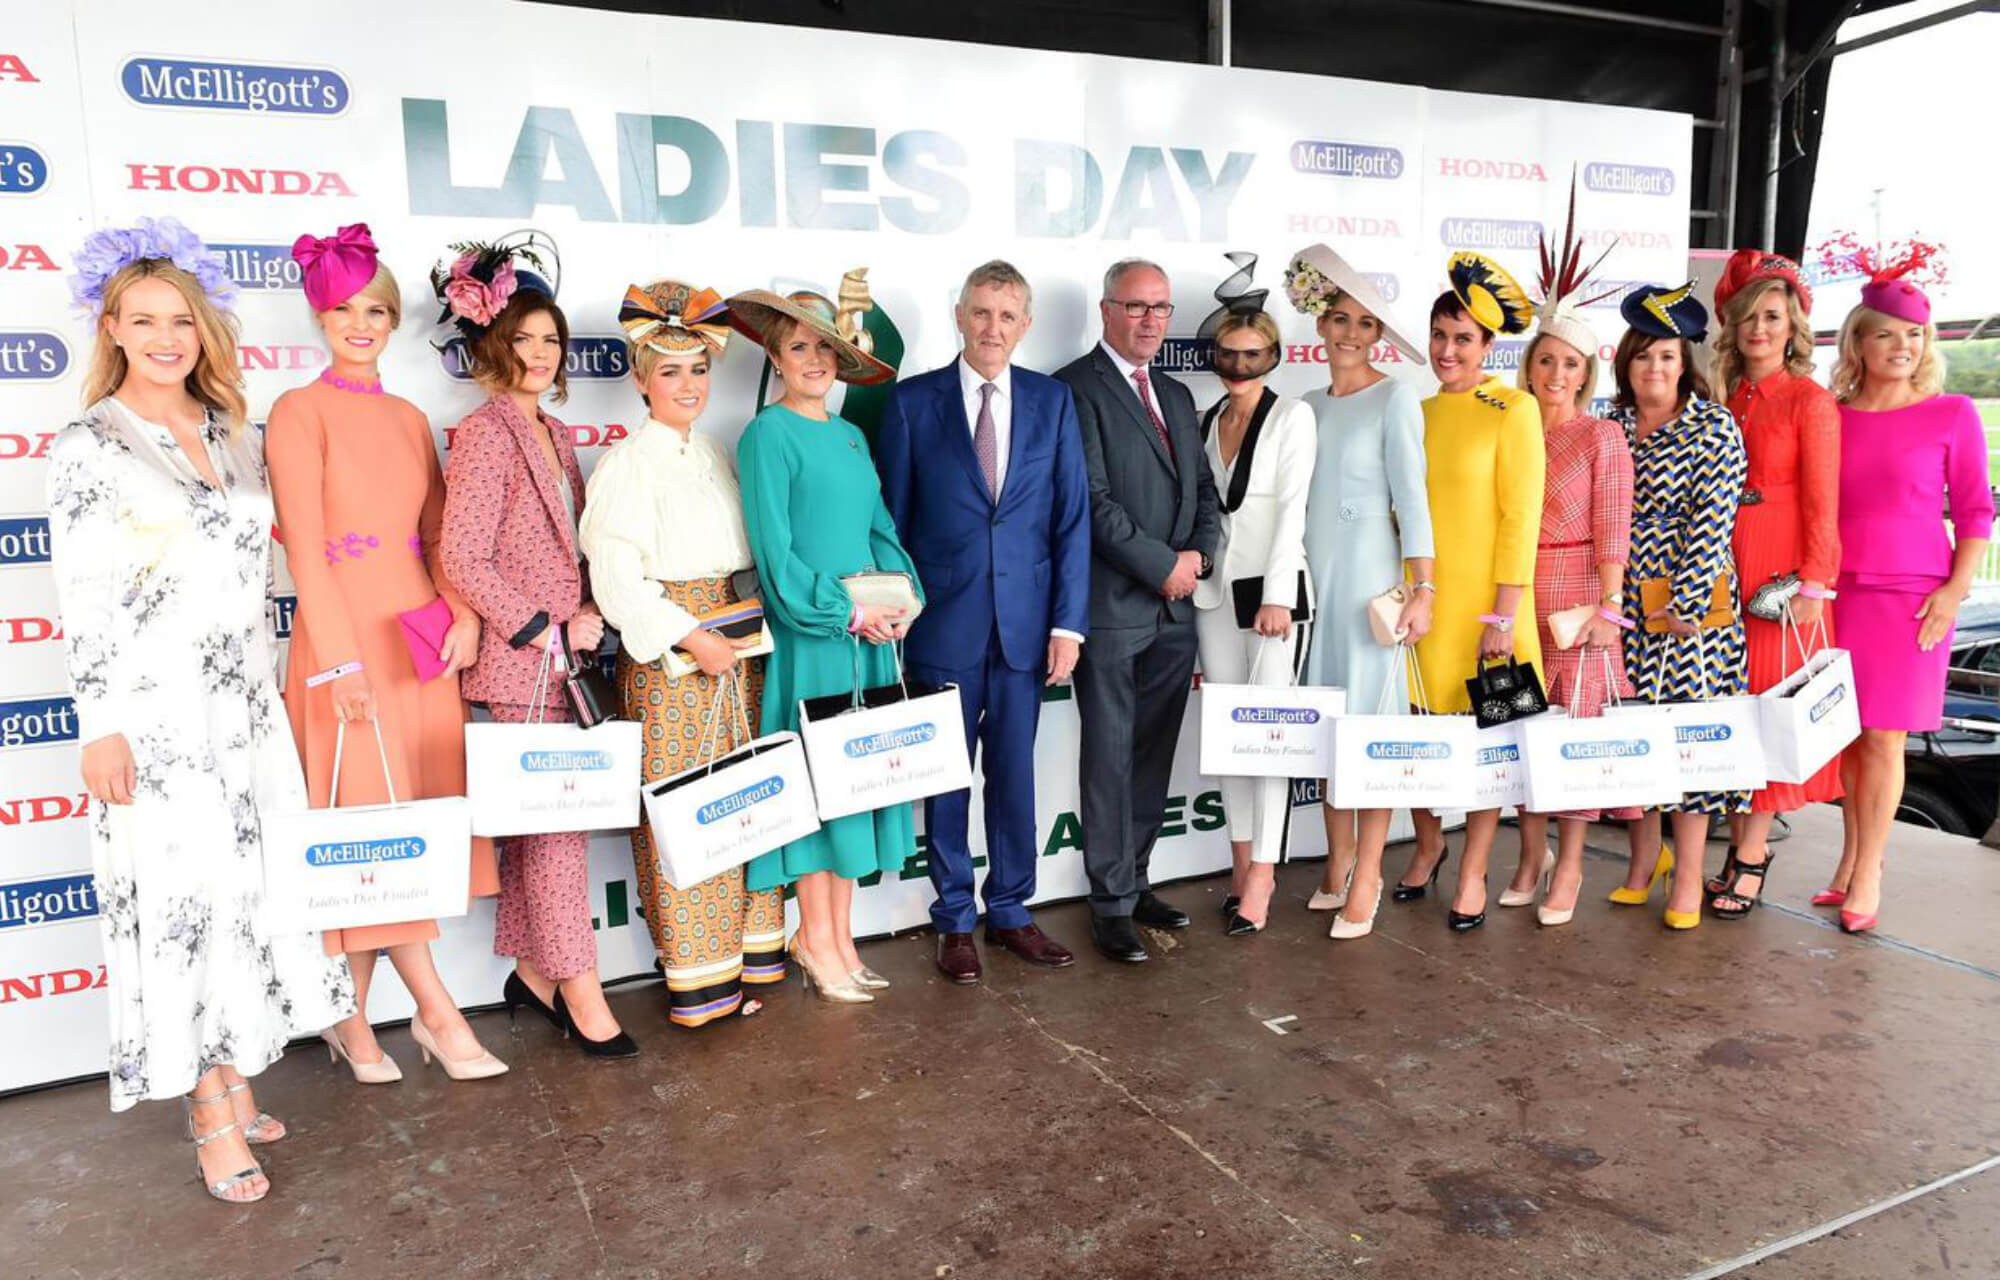 "McElligott's Honda Ladies Day at the Listowel Races"" src="